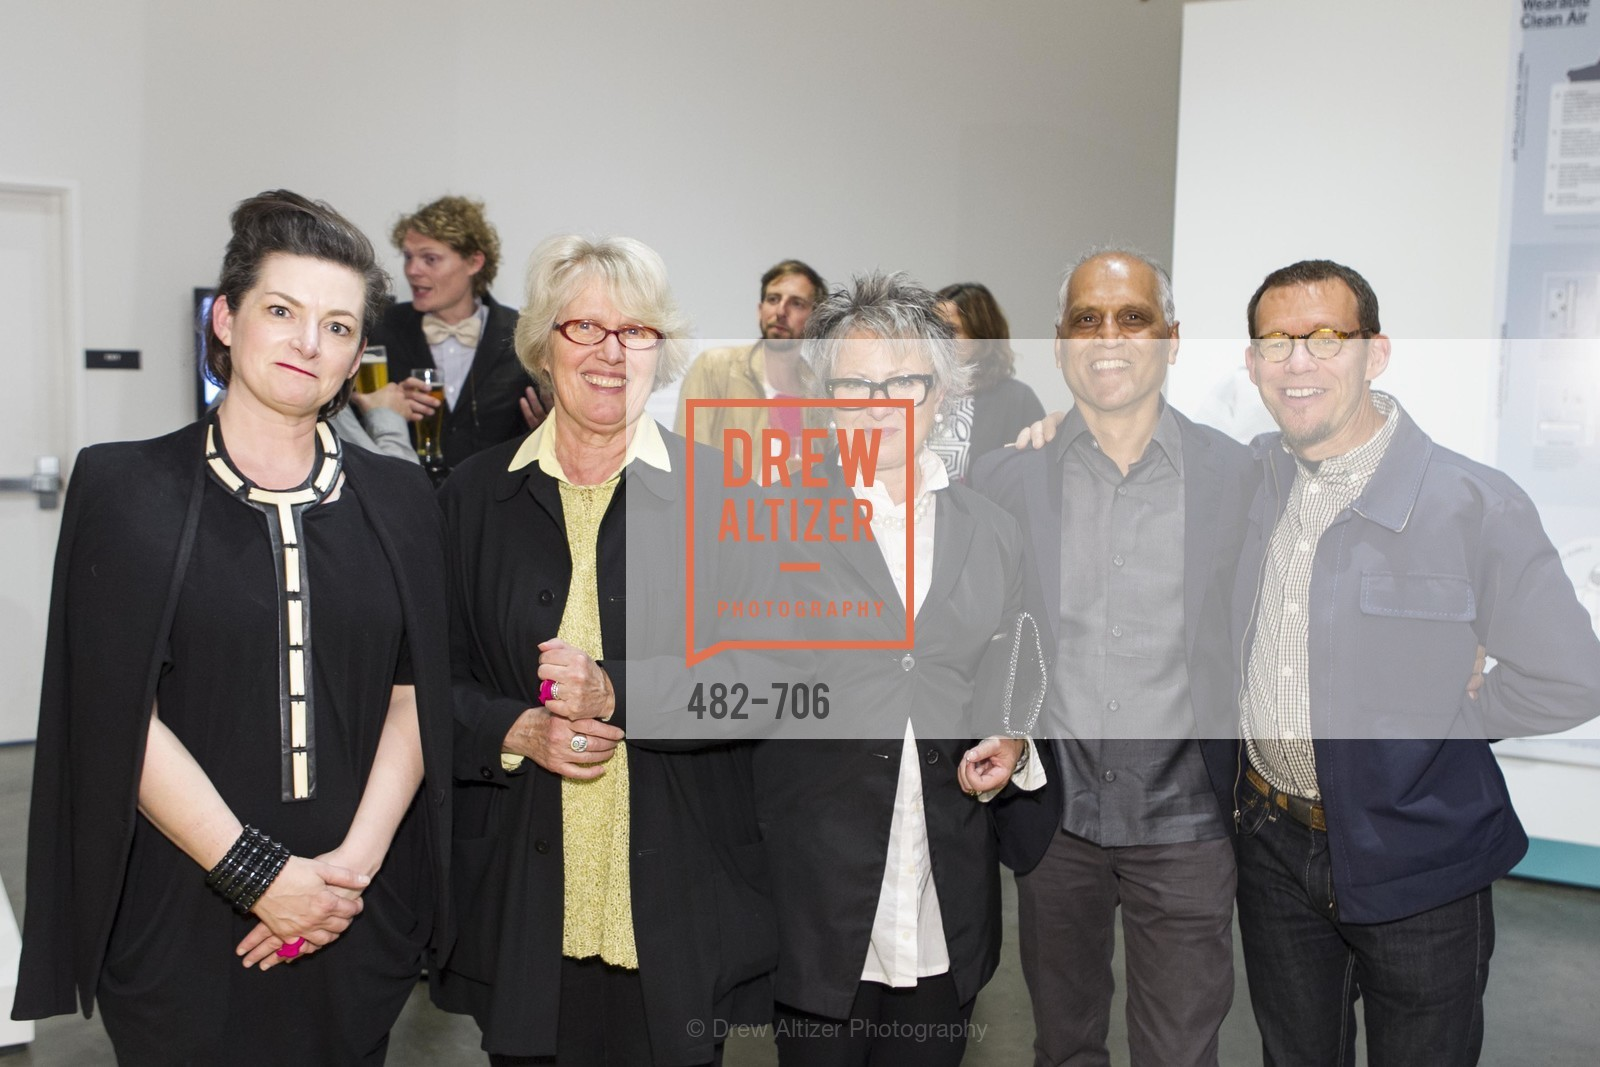 Alisa Carroll, Agnes Bourne, Jennifer Morla, Zahid Sardar, Ted Boerner, Exhibit Opening at the MUSEUM OF CRAFT AND DESIGN - Hands Off: New Dutch Design at the Confluence of Technology & Craft, US, May 8th, 2015,Drew Altizer, Drew Altizer Photography, full-service agency, private events, San Francisco photographer, photographer california